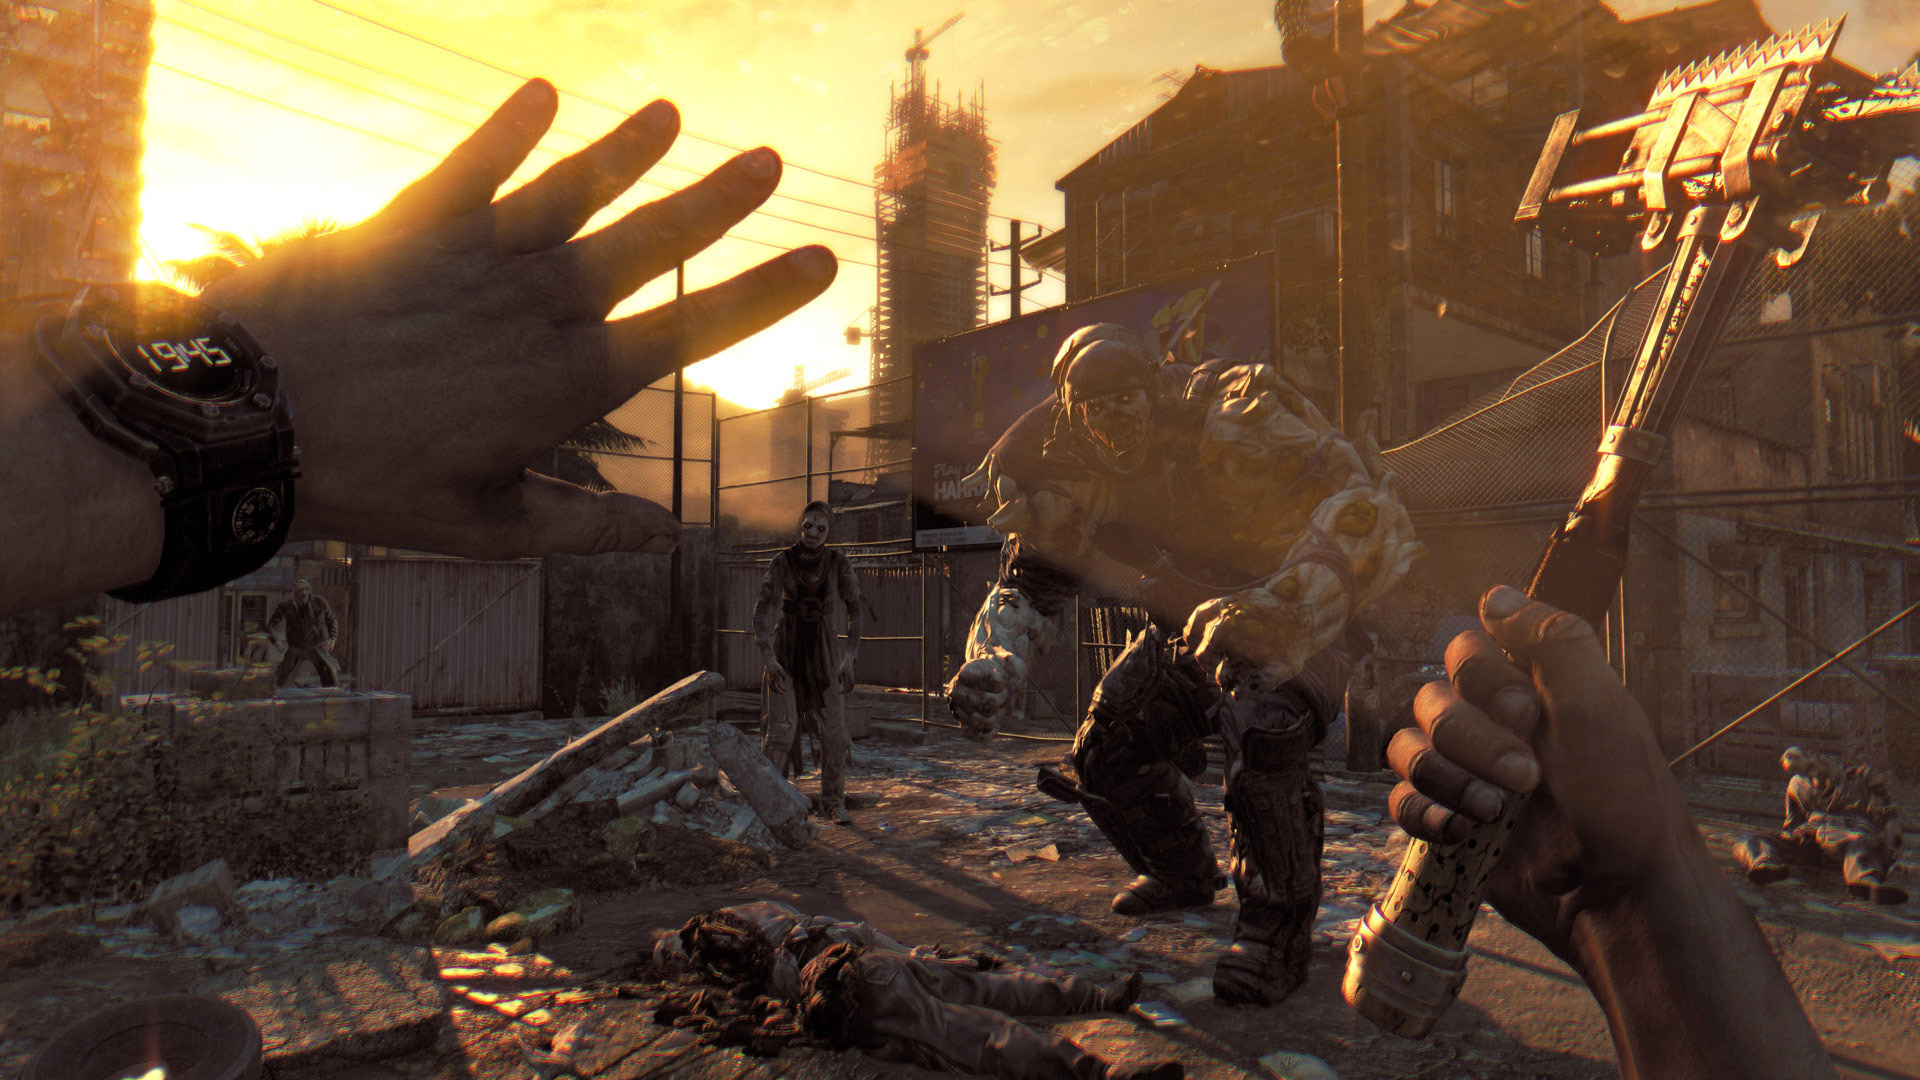 Meet Dying Light's Destiny-styled loot cave